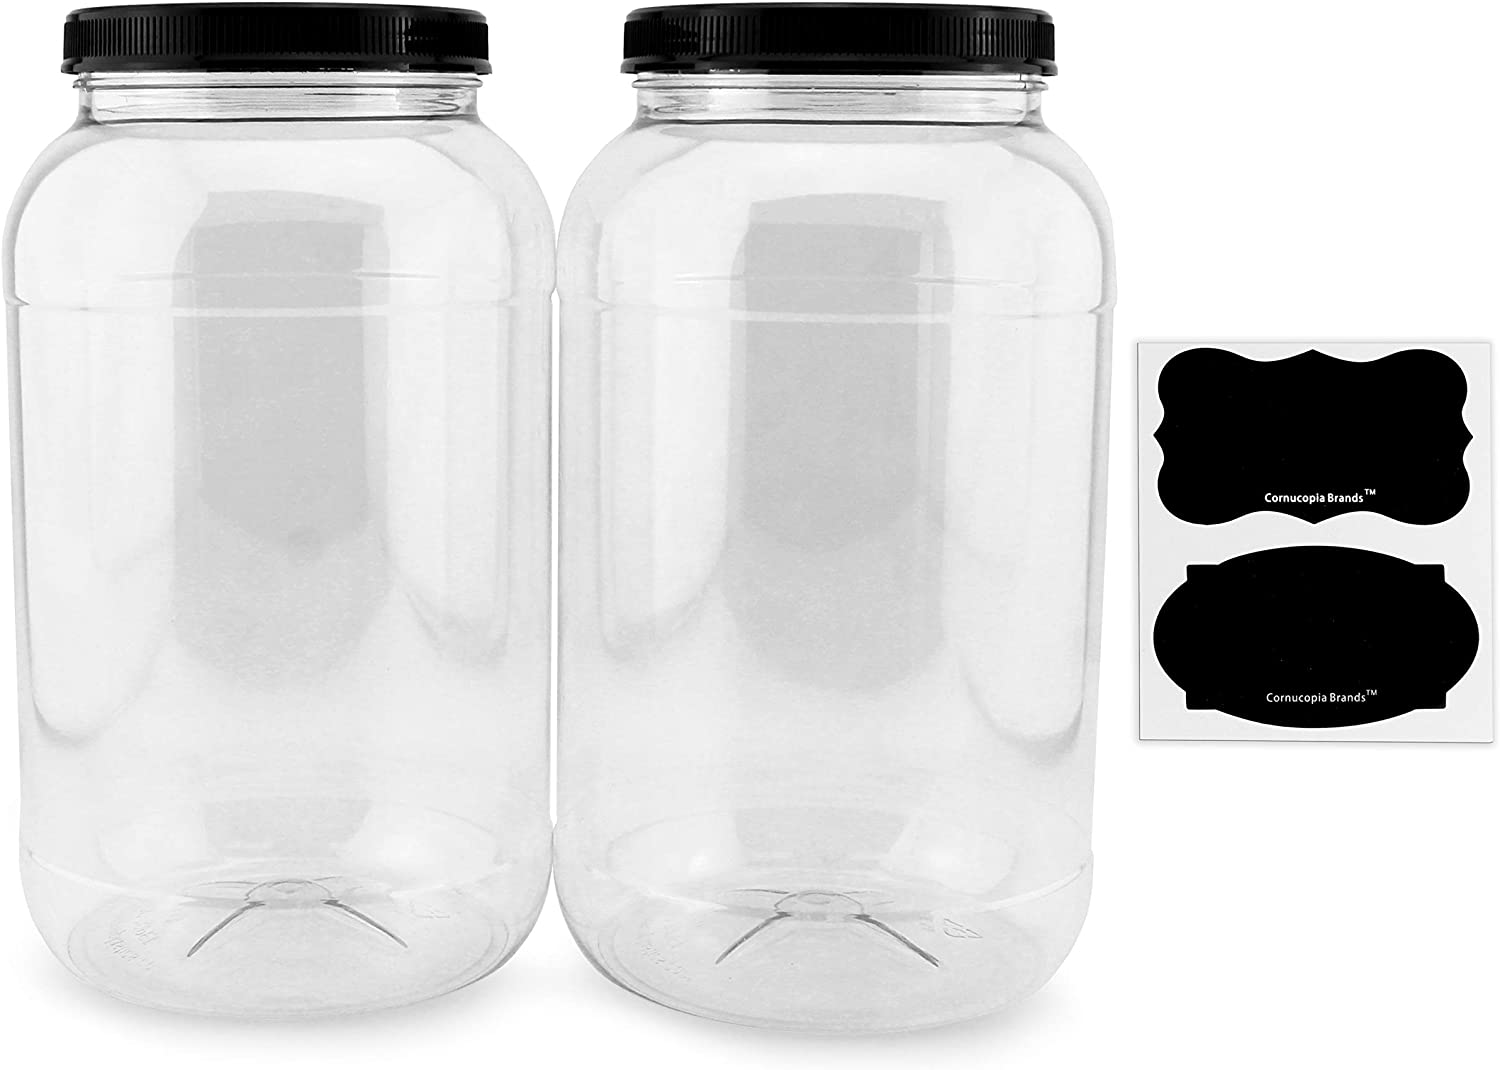 Cornucopia Gallon Plastic Jars (2-Pack); Clear Round Containers with Black Ribbed Lids, BPA-Free 4-Quart Large Size